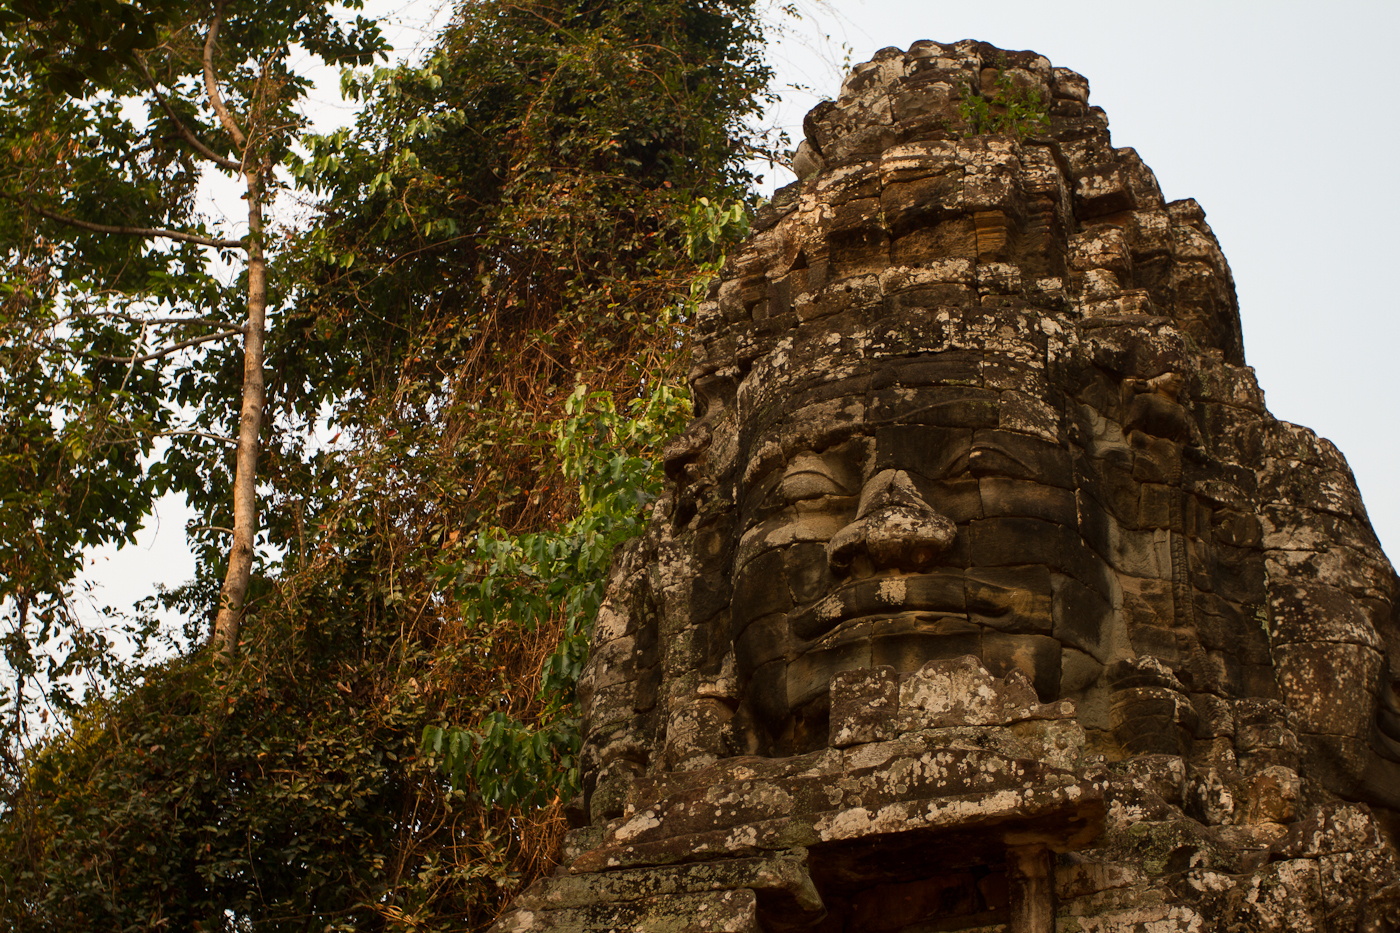 The mysterious smiling faces adorned many temple doorways.